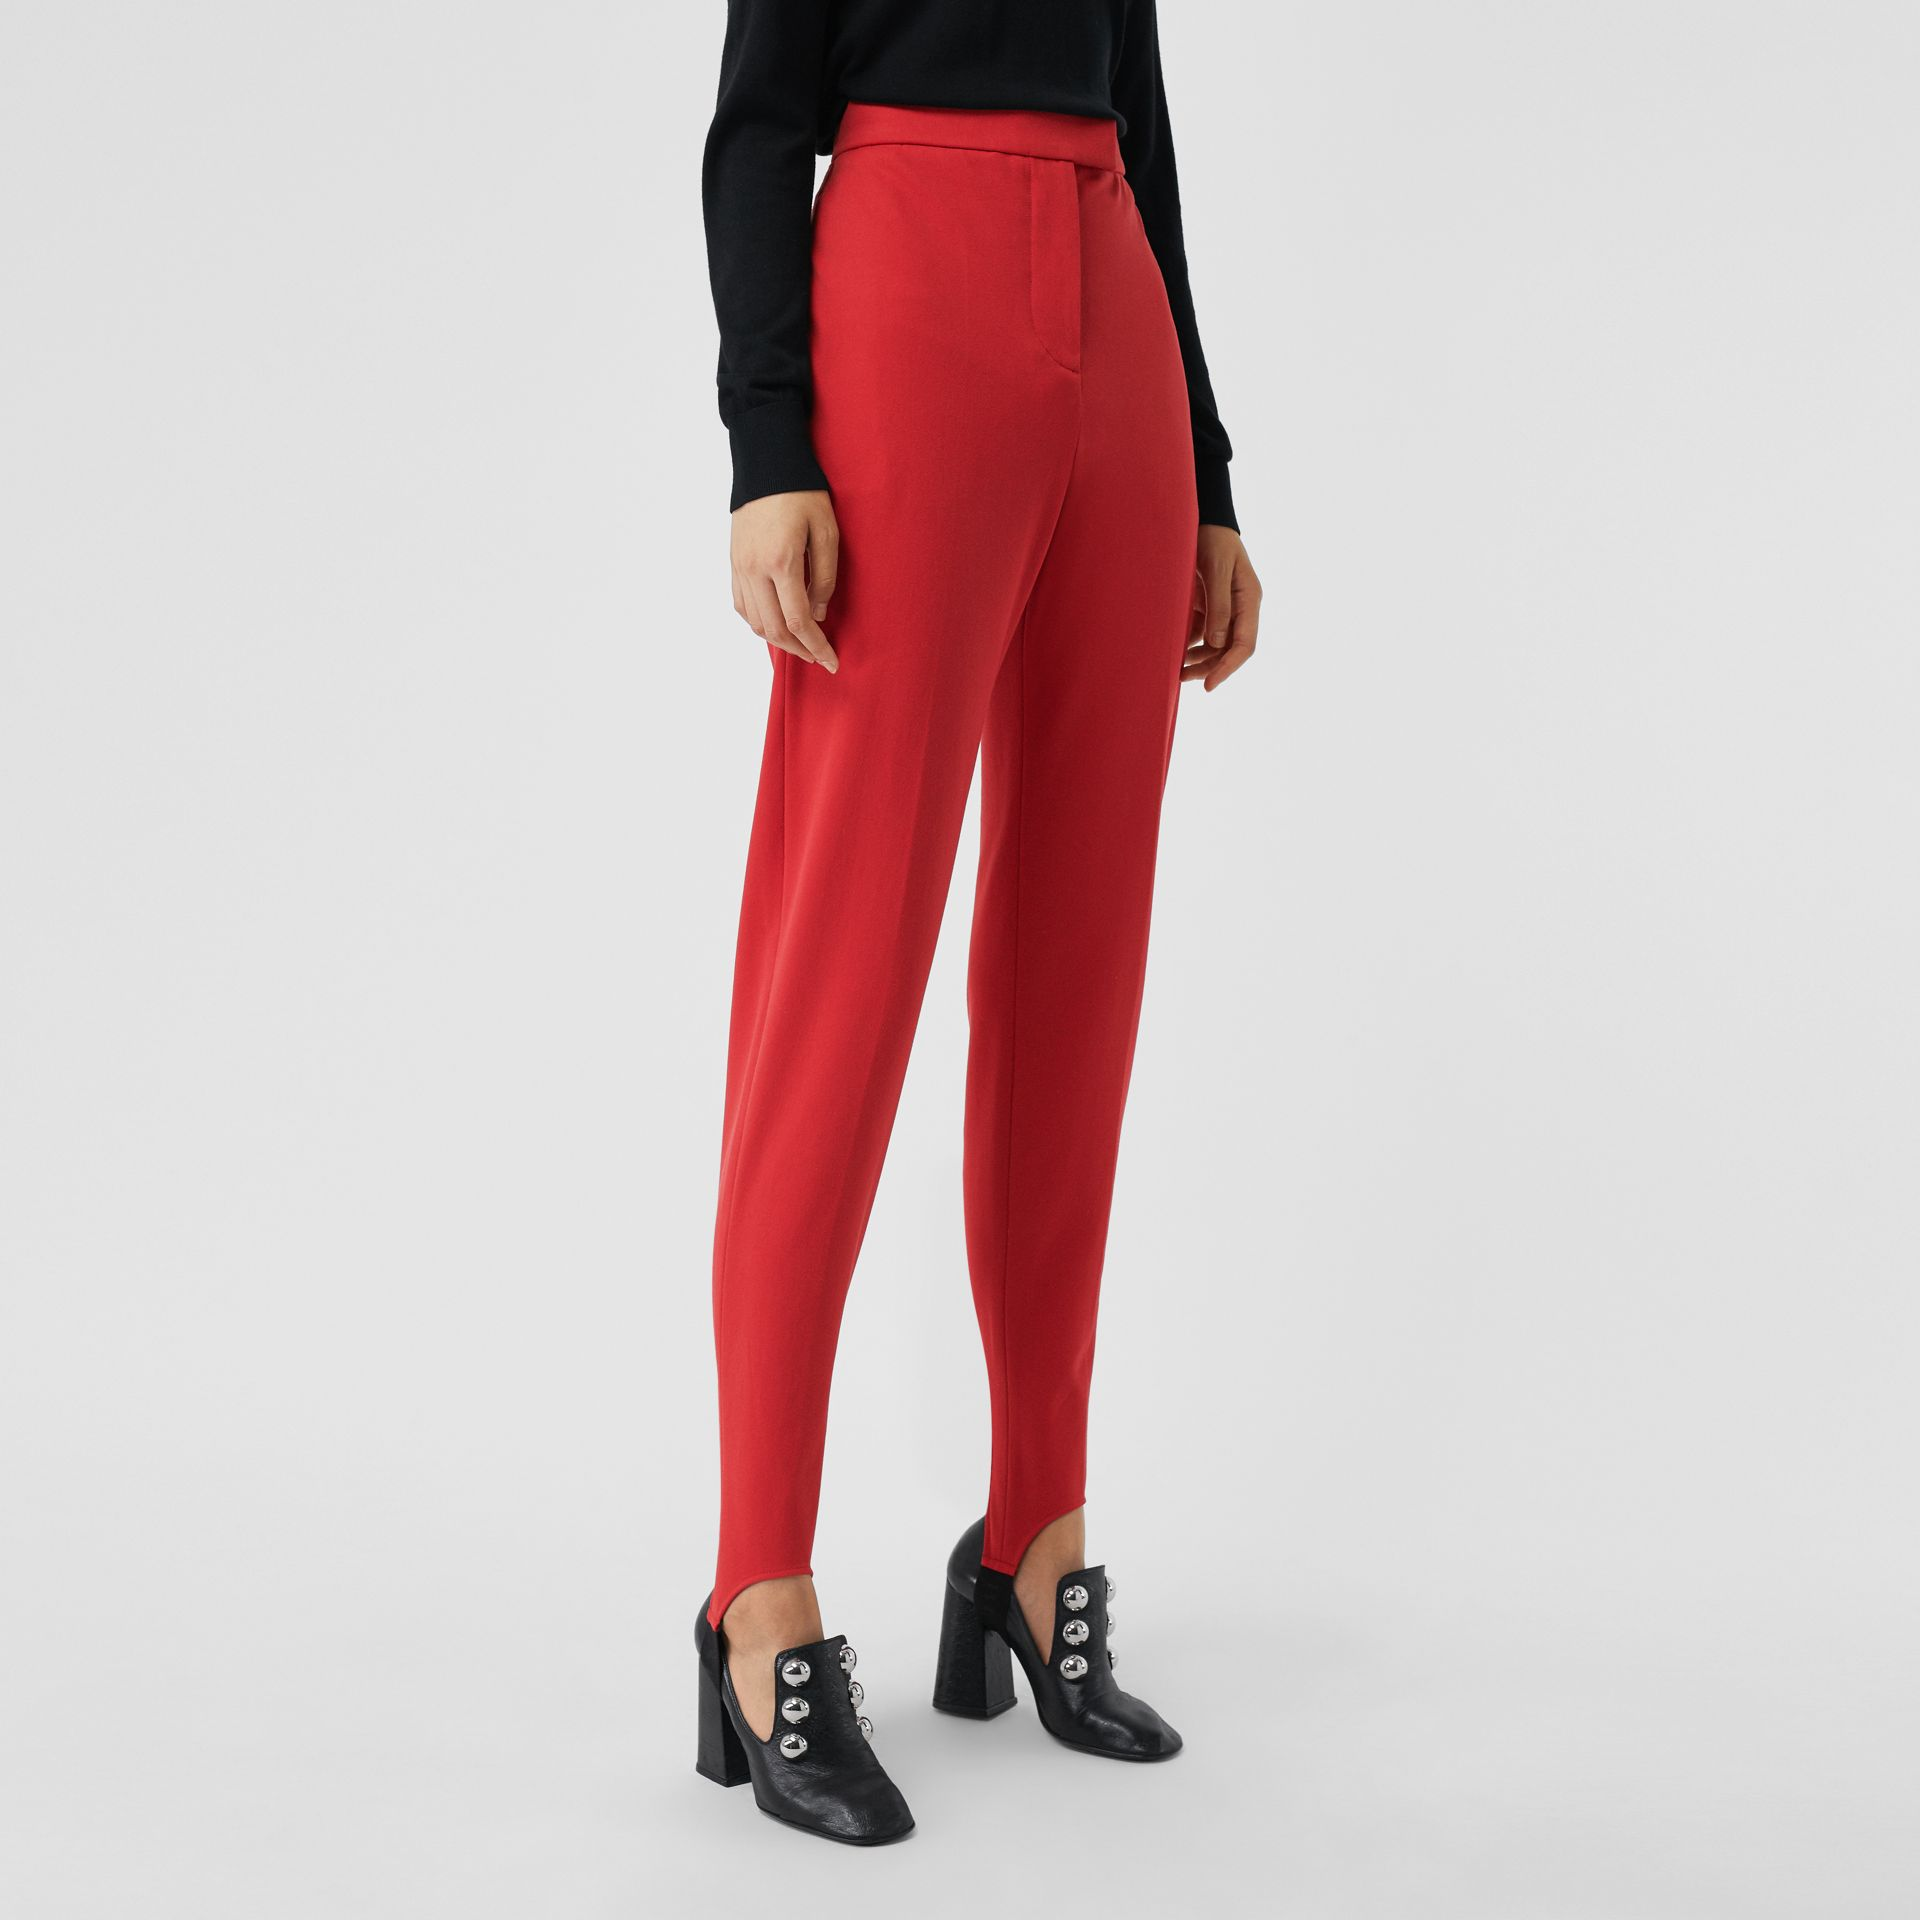 Long Cotton Blend Tailored Jodhpurs in Bright Red - Women | Burberry - gallery image 5